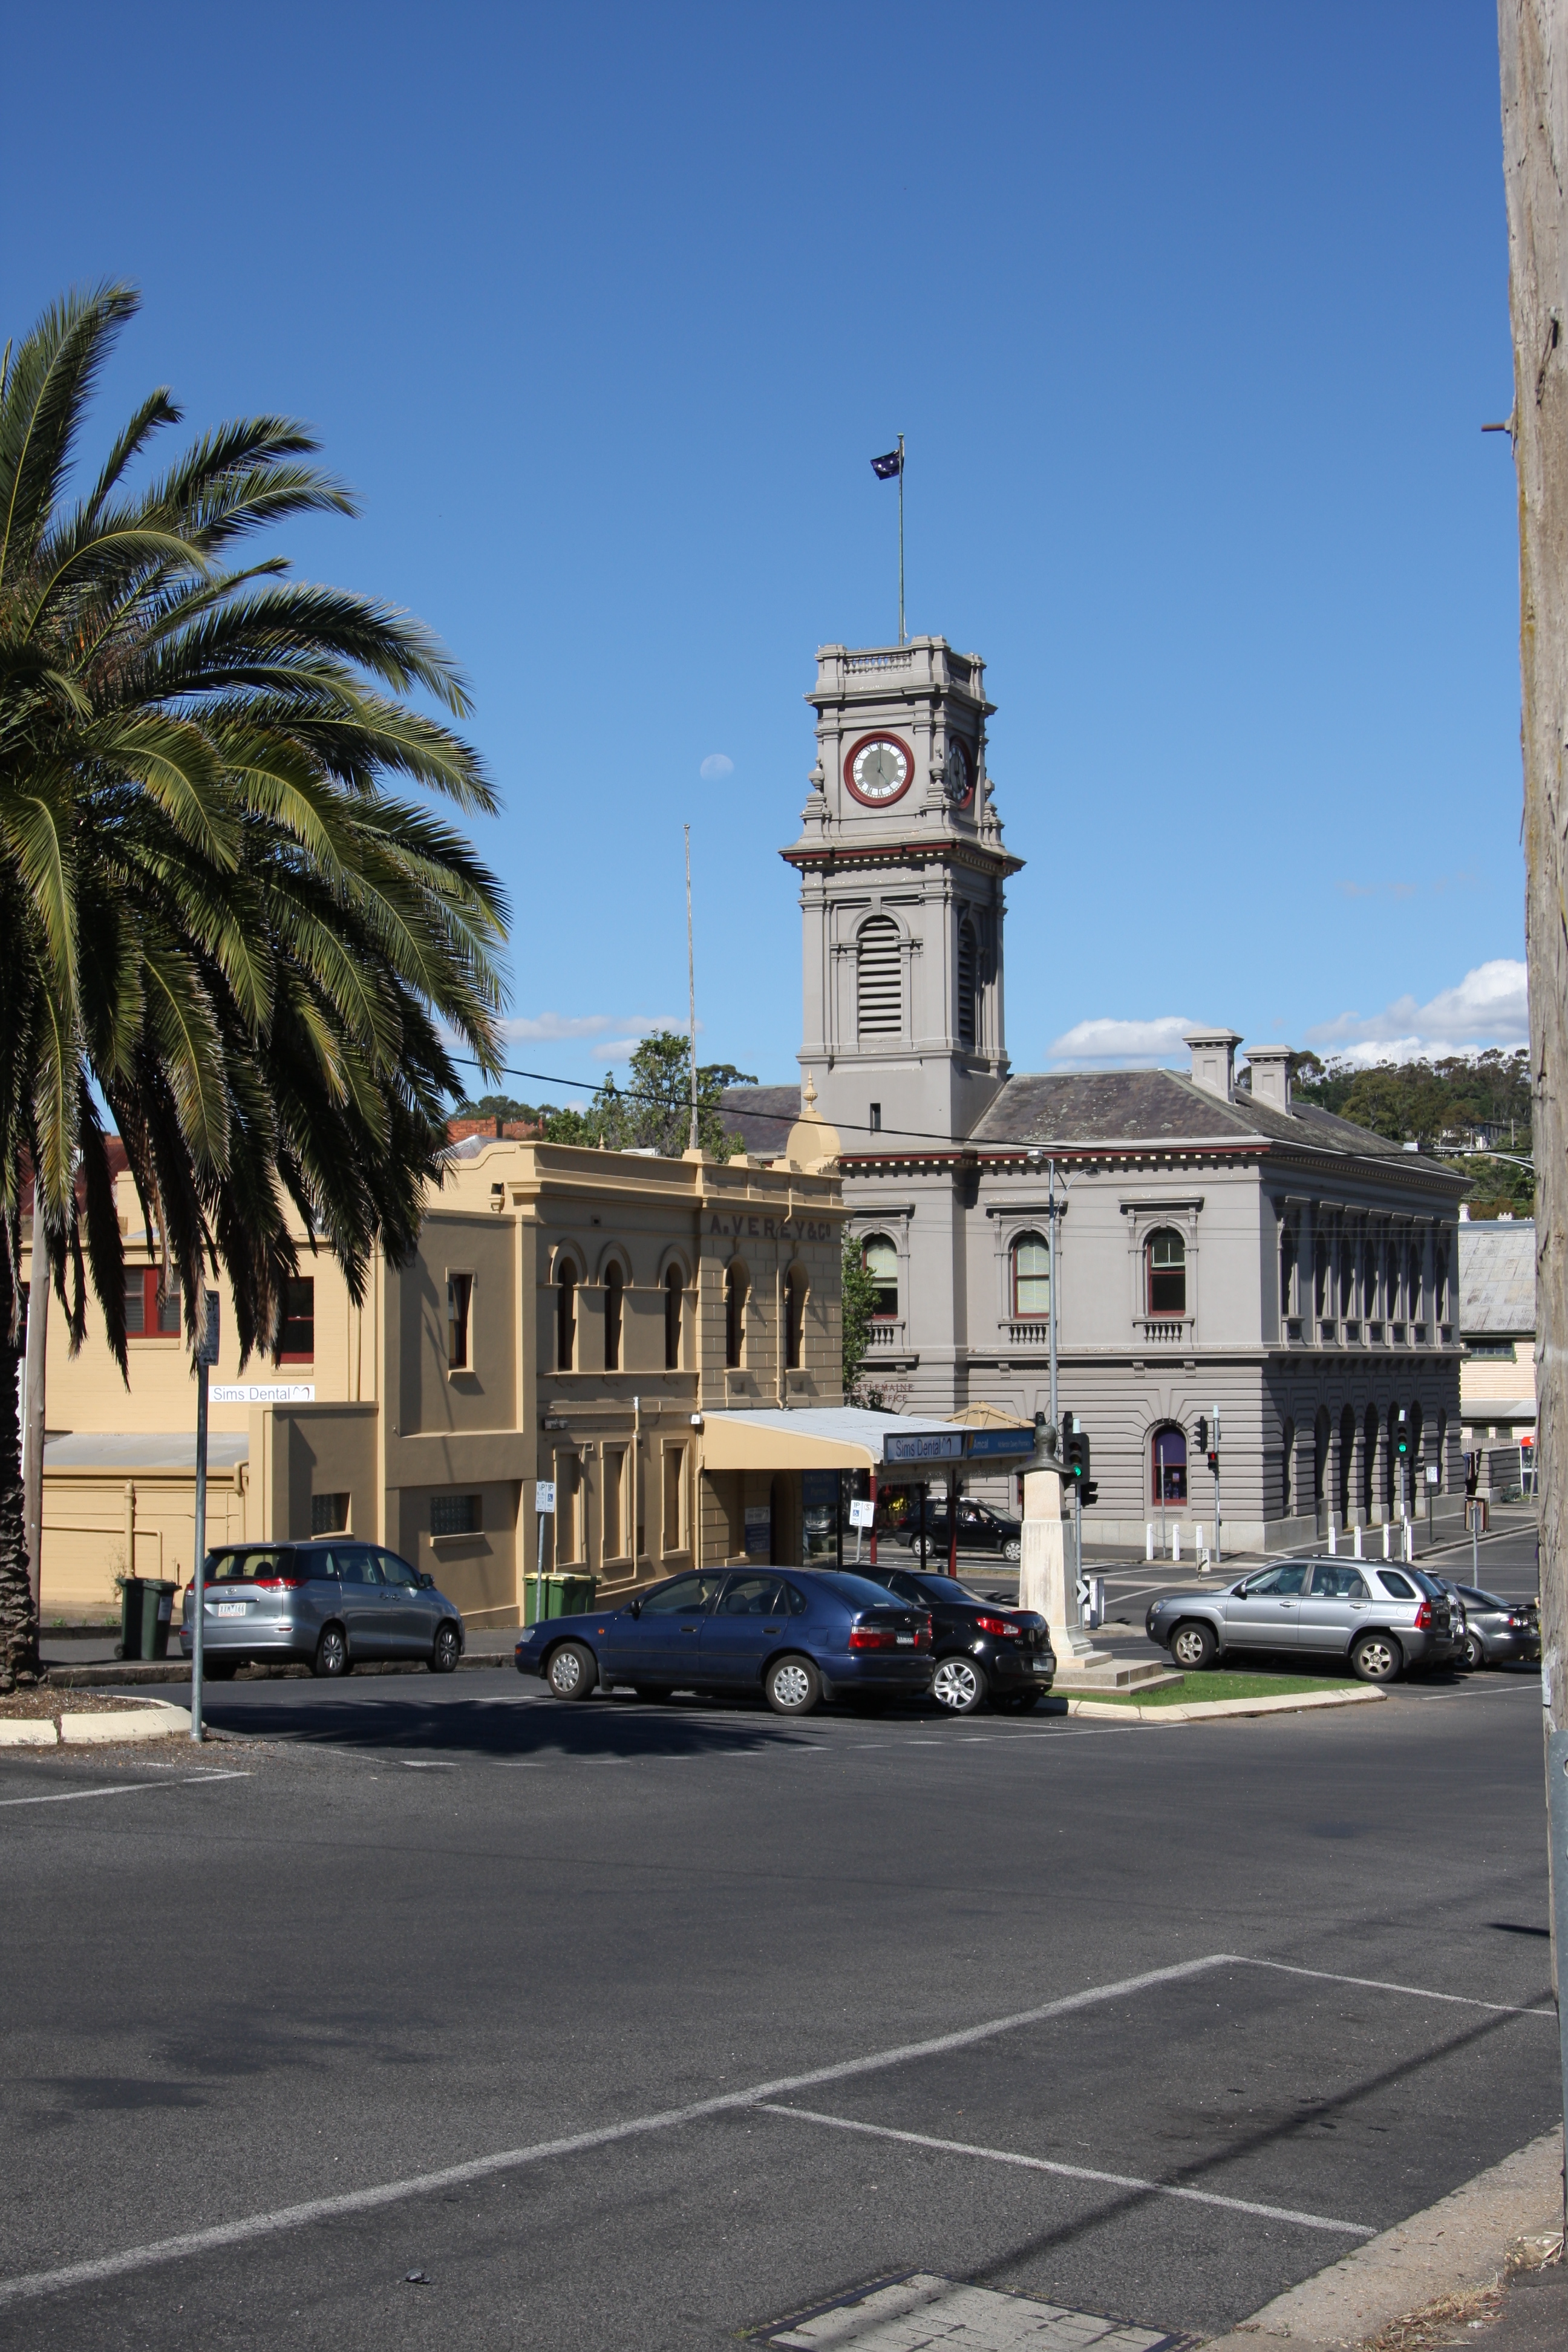 part of the Castlemaine post office building